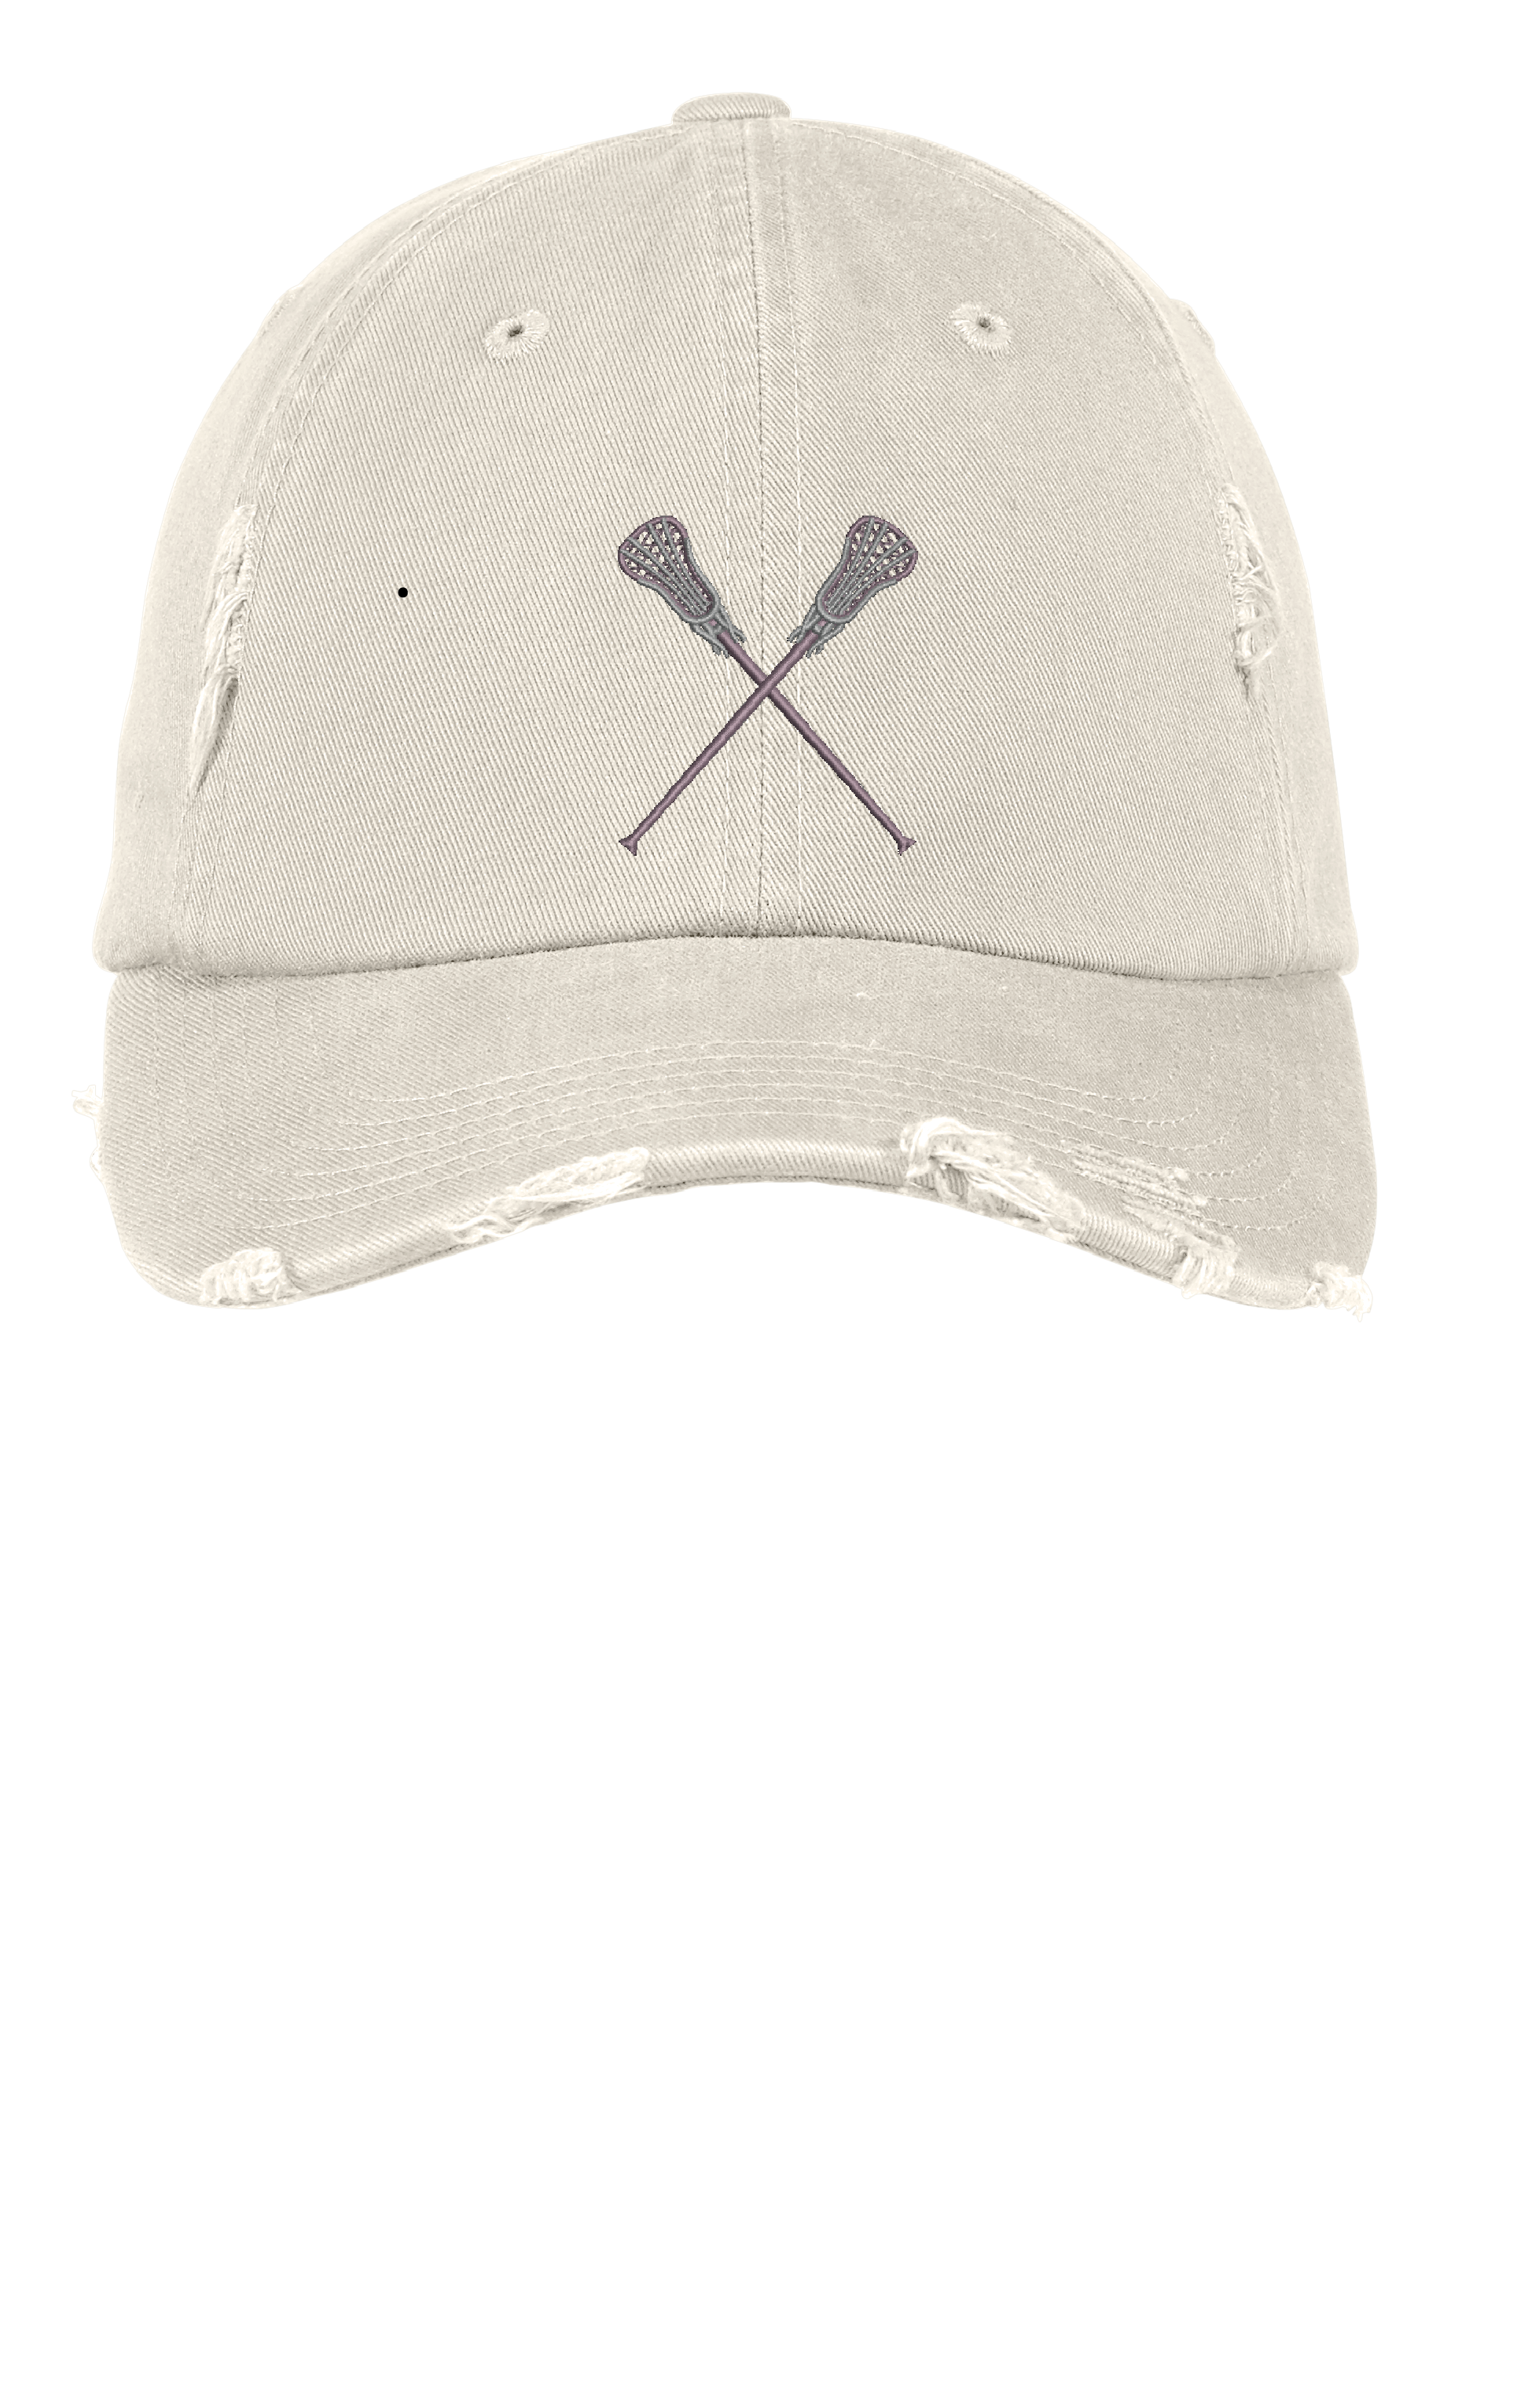 d9afe1cd08a The perfect lacrosse cap for the lacrosse player or lacrosse fan in your  life! UNISEX